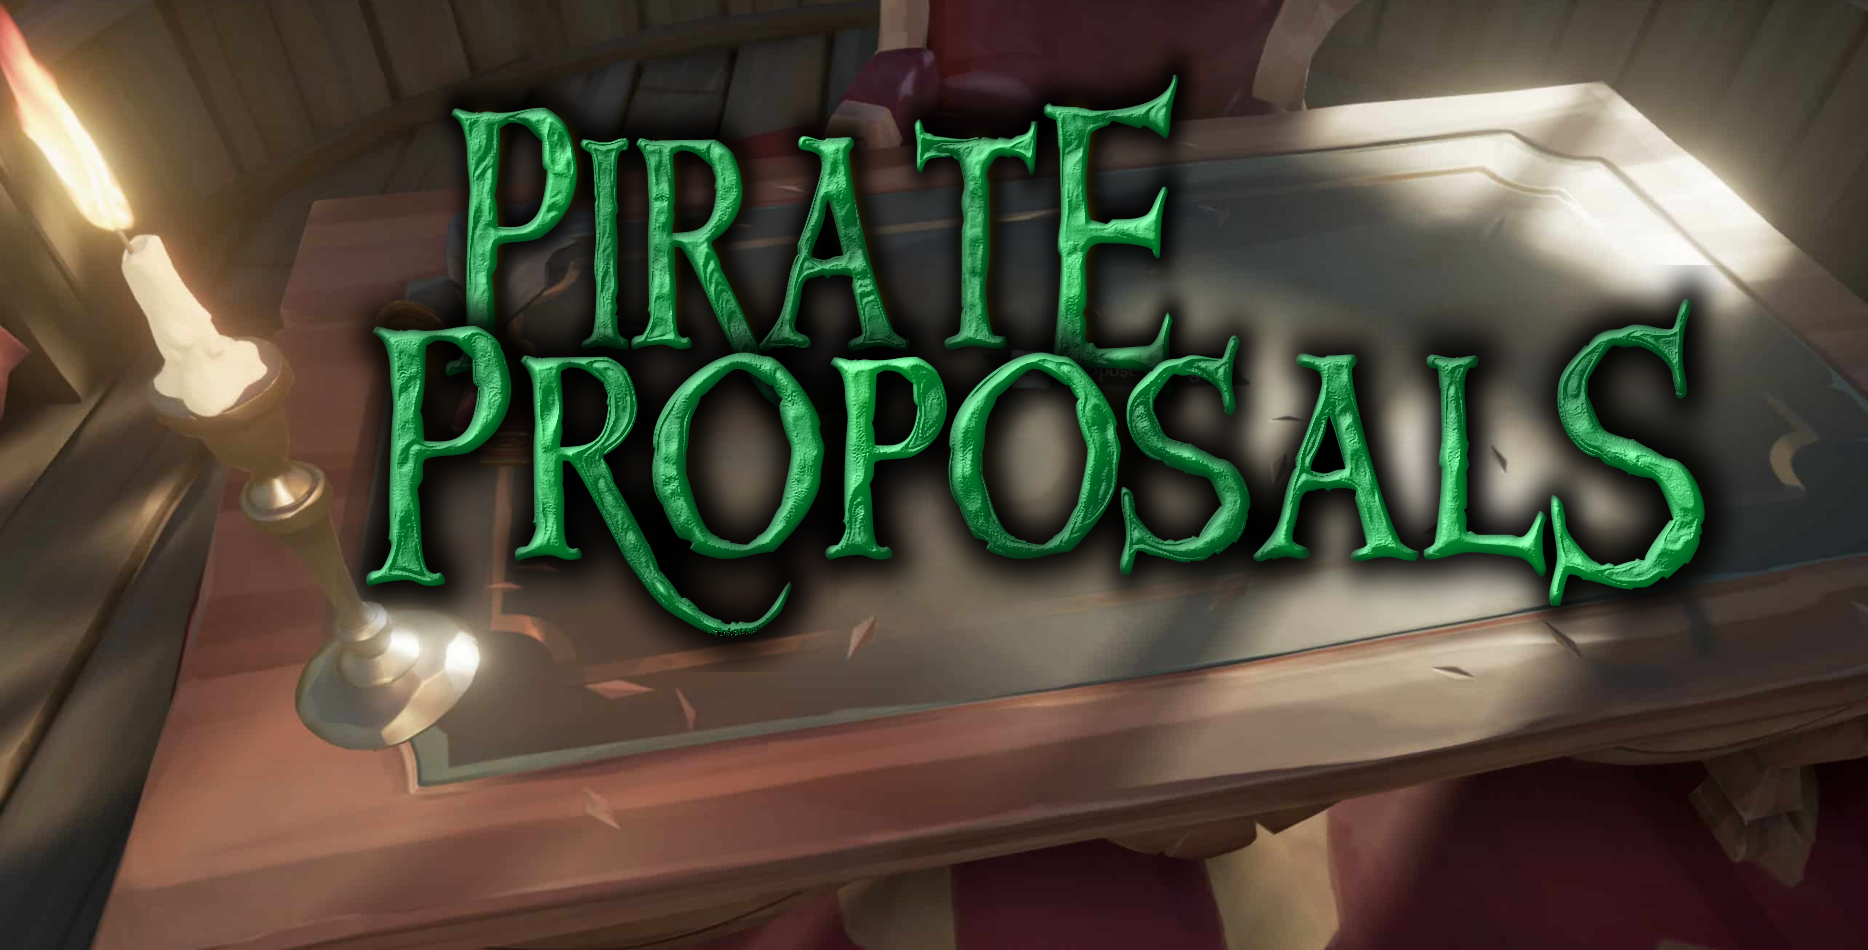 Pirate Proposals Improving The Pirate Selection Process By Jeff Onan Golden Sands Blogpost Medium